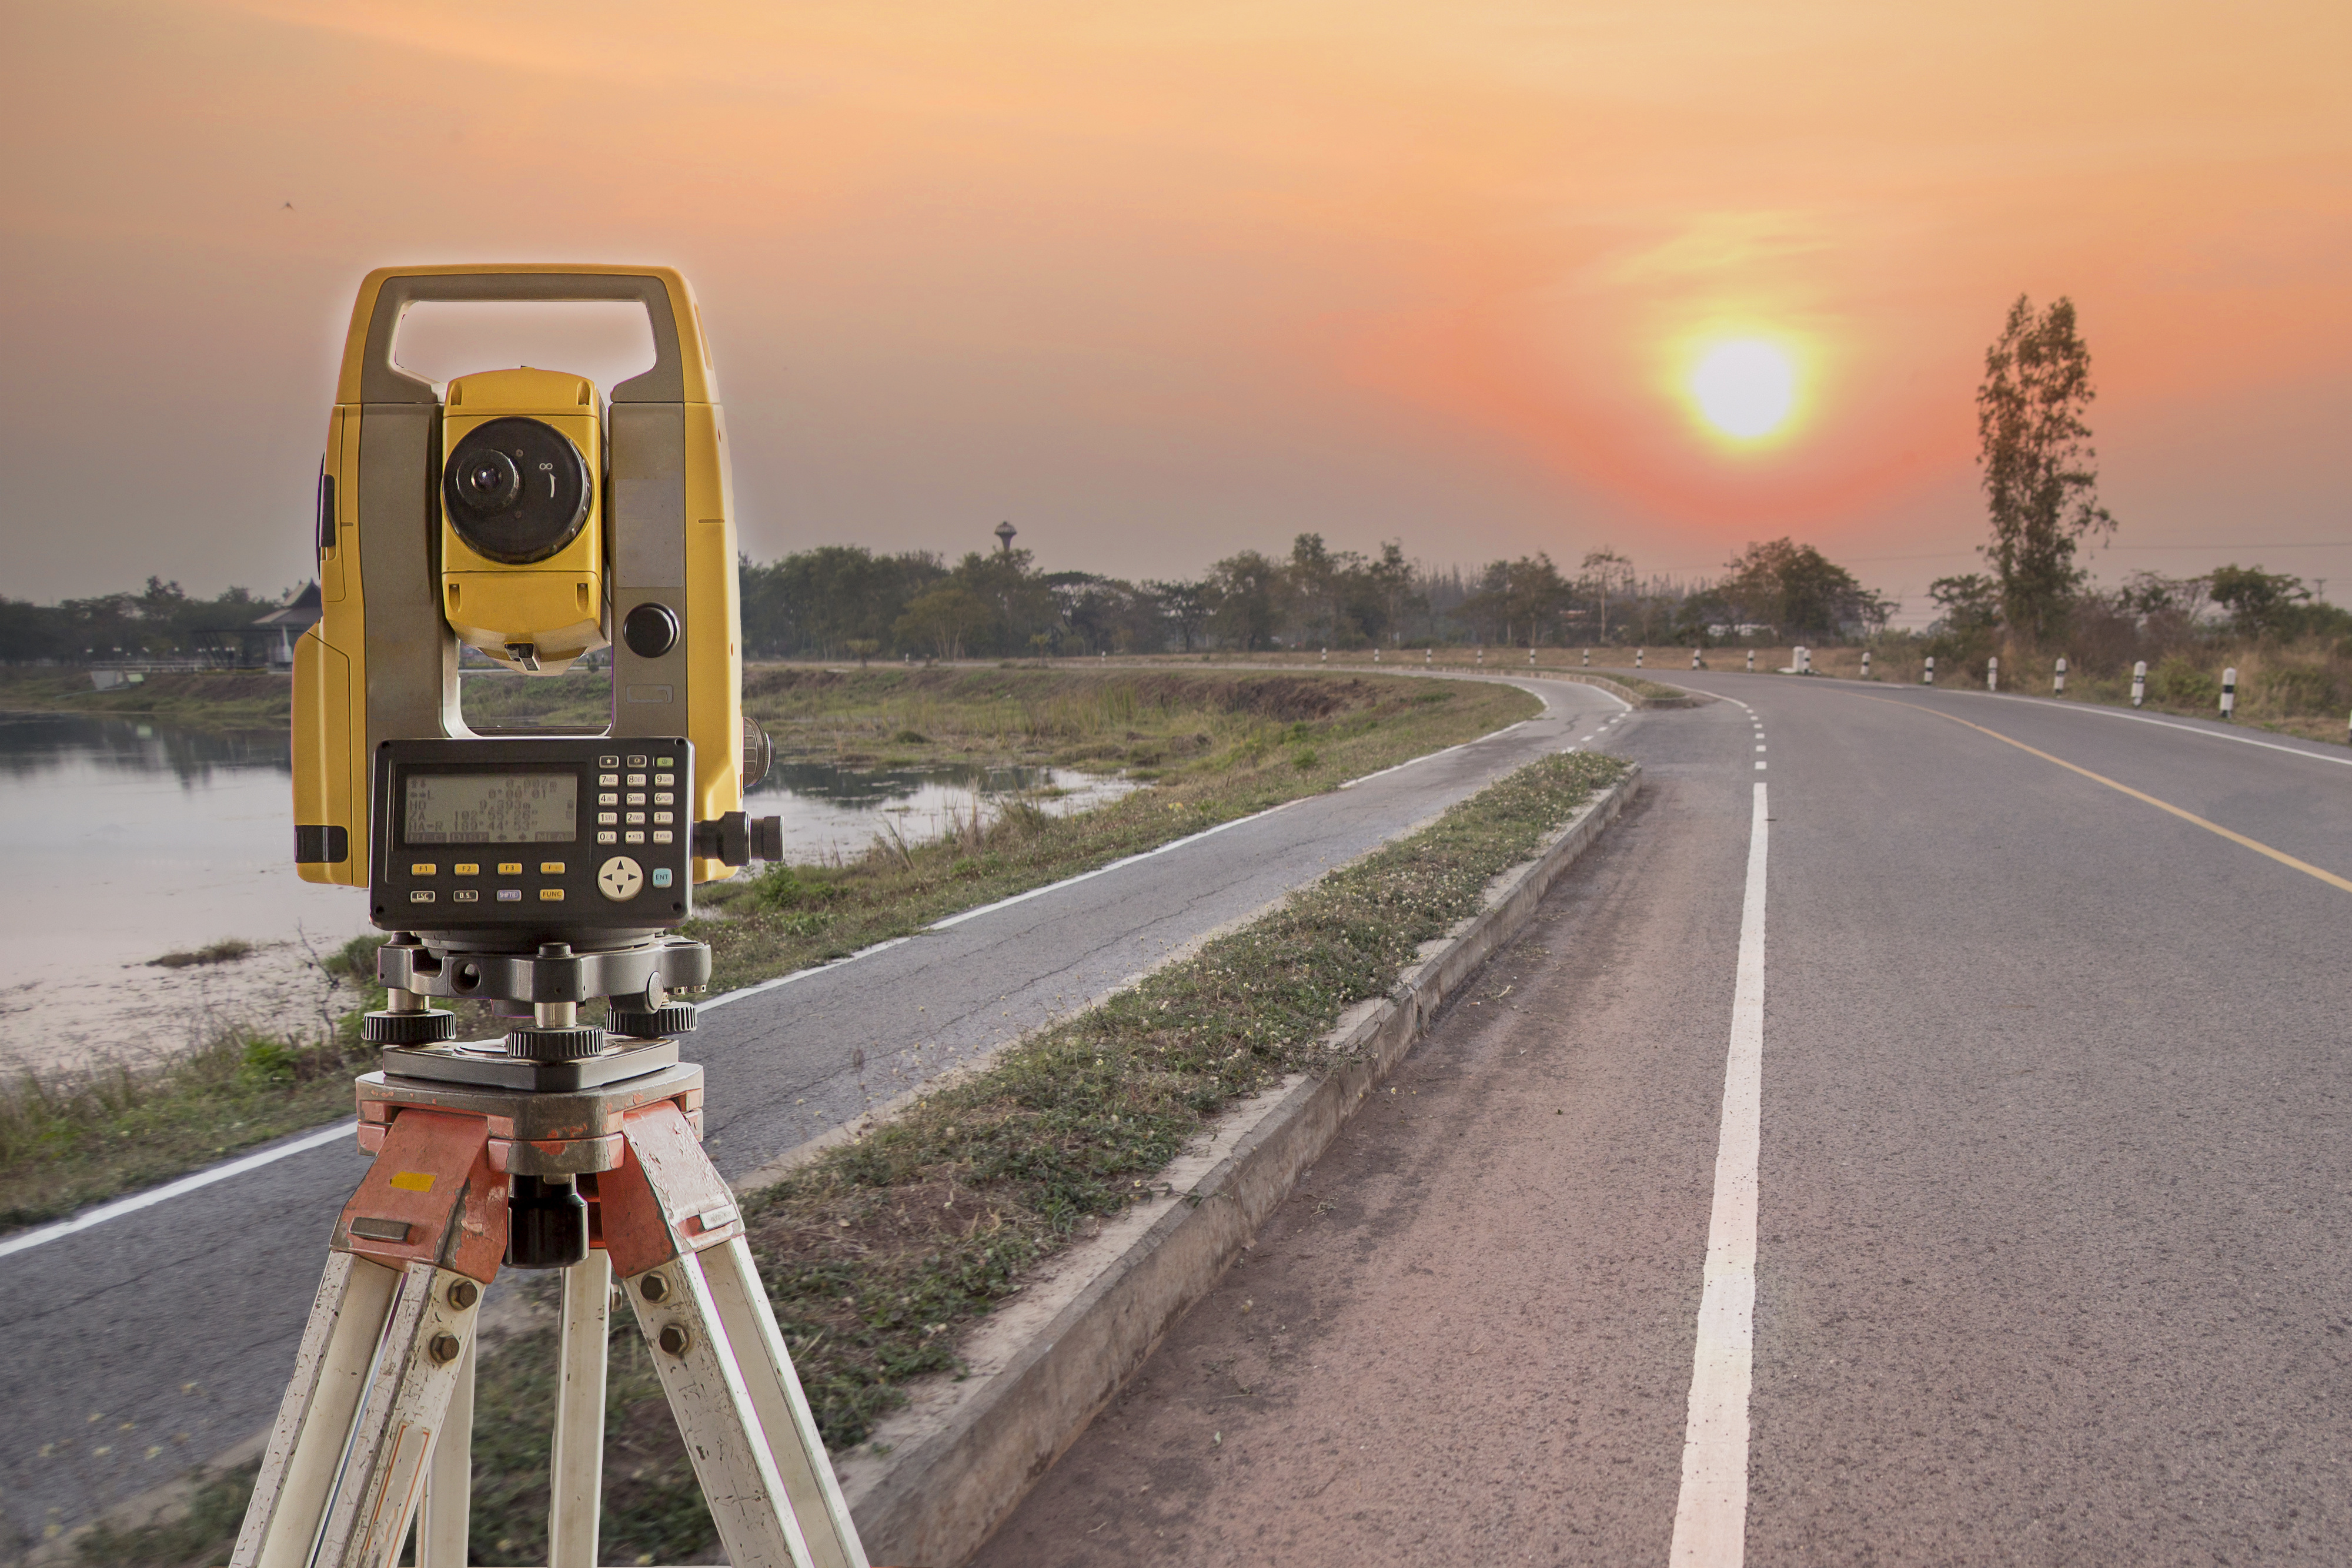 Engineering Survey Equipment By A Road At Sunset